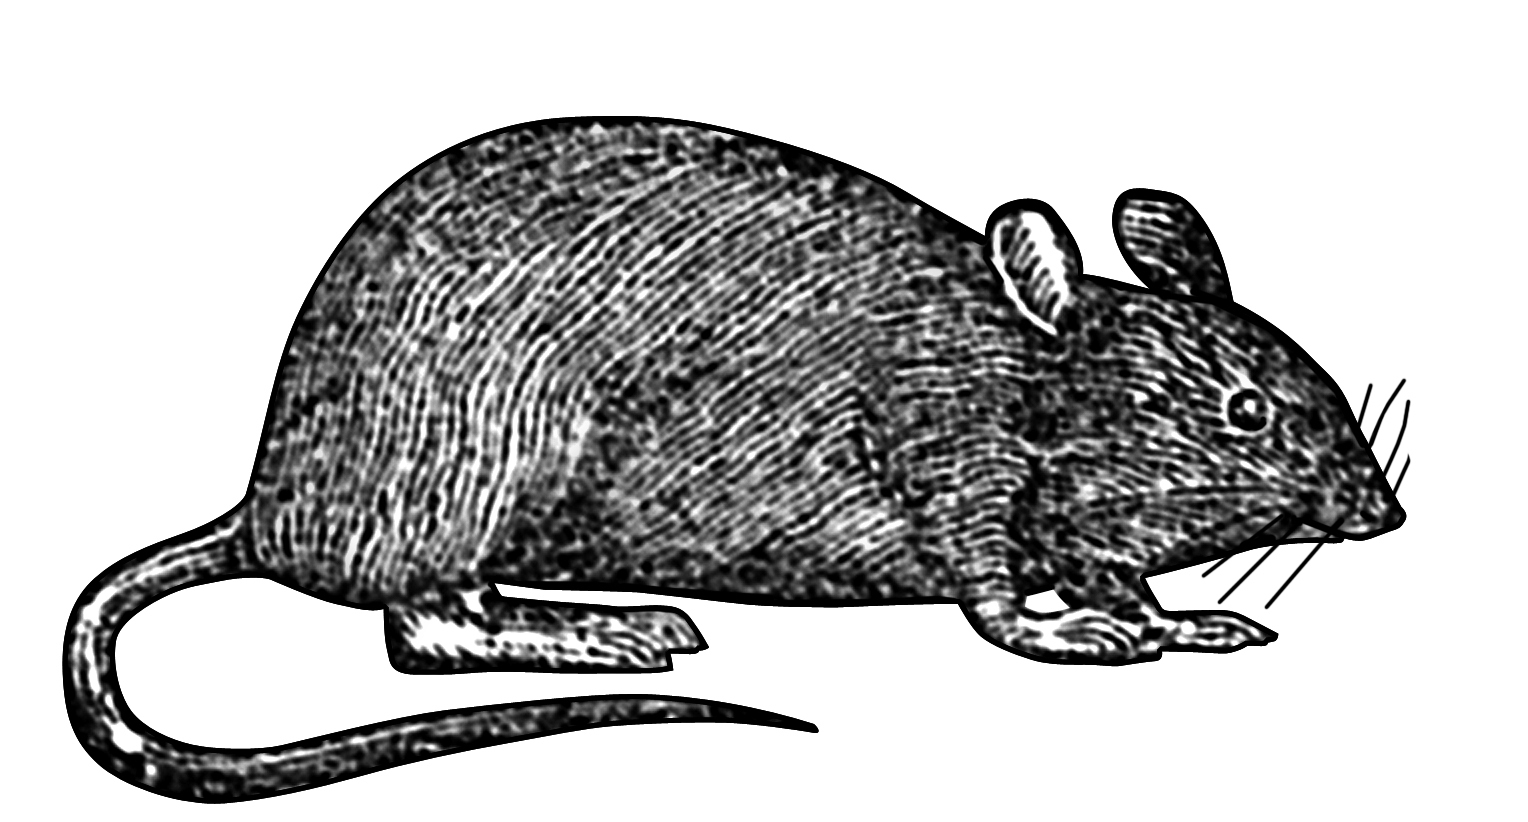 This line drawing of a mouse was part of the trademark for the anvils made at Mousehole Forge at Malin Bridge, Sheffield